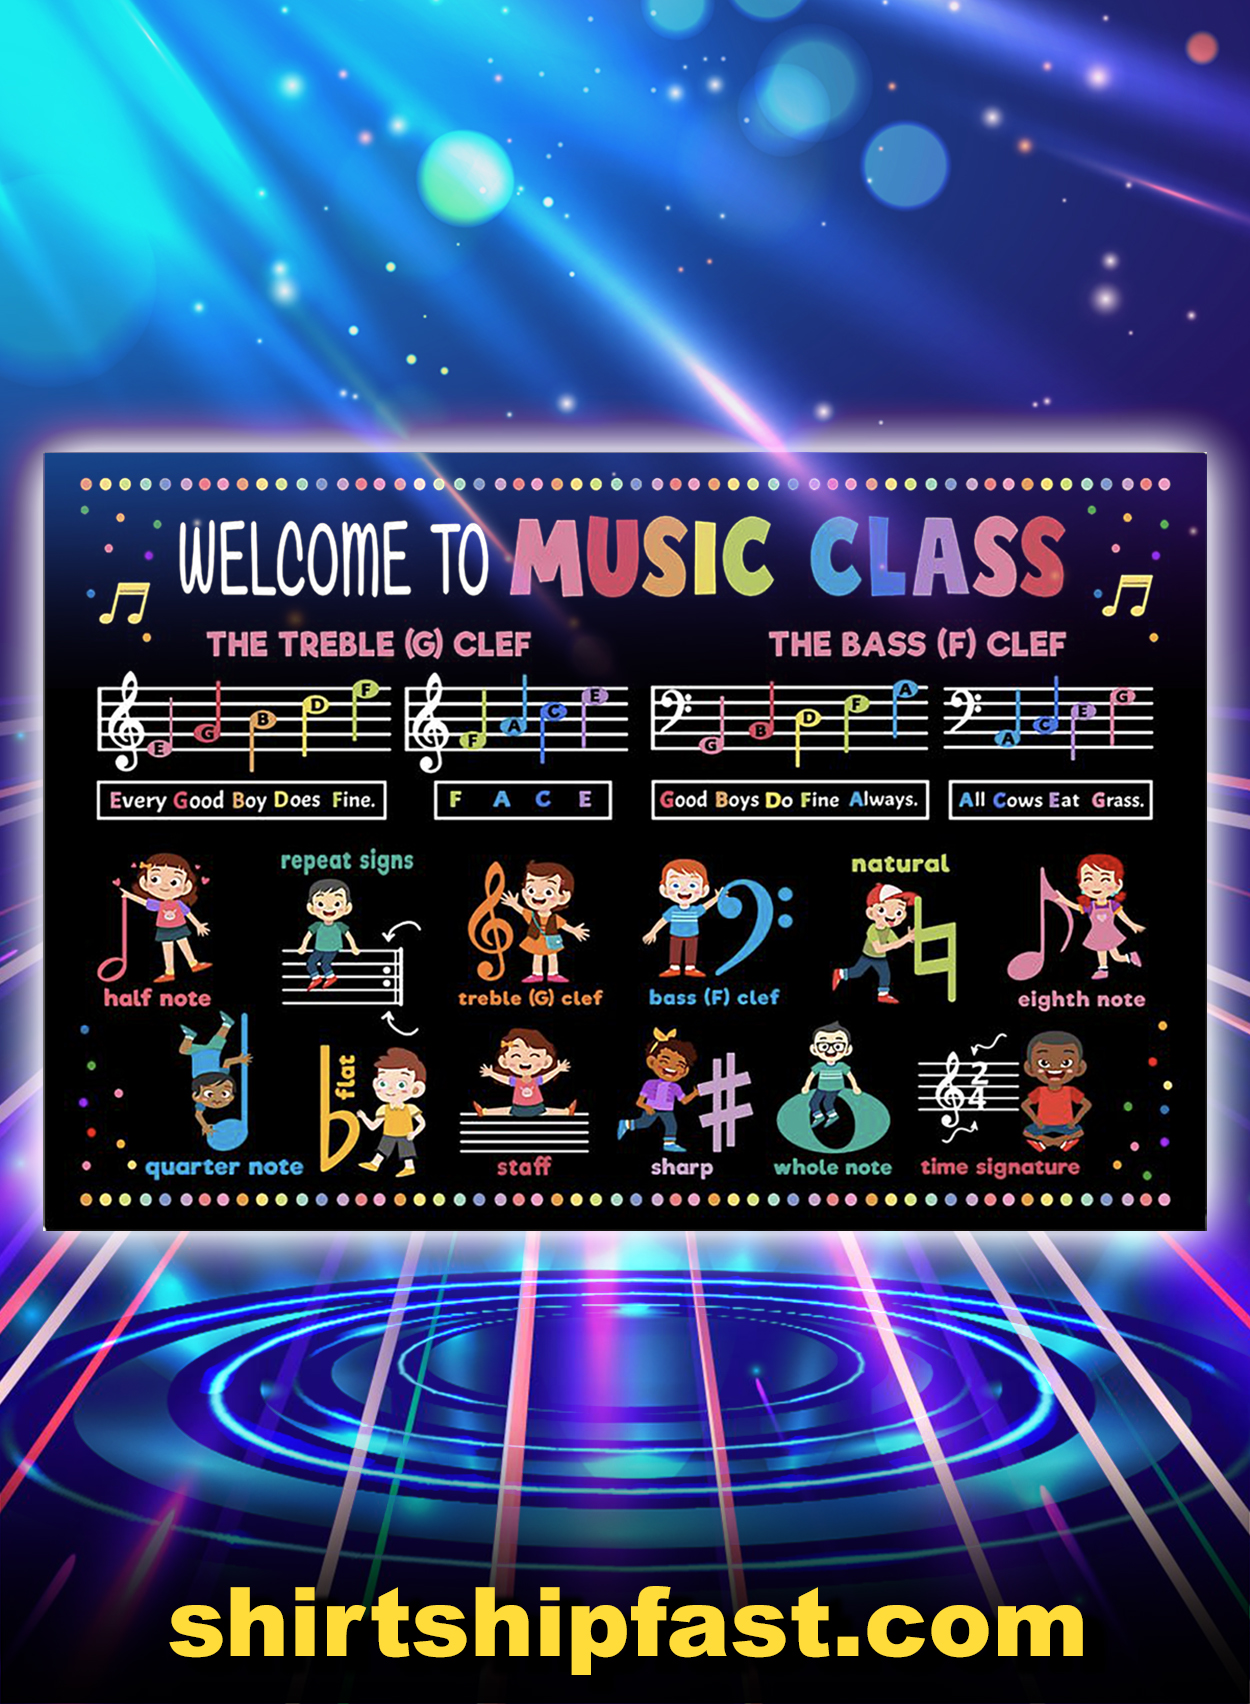 Welcome to music class poster - A2